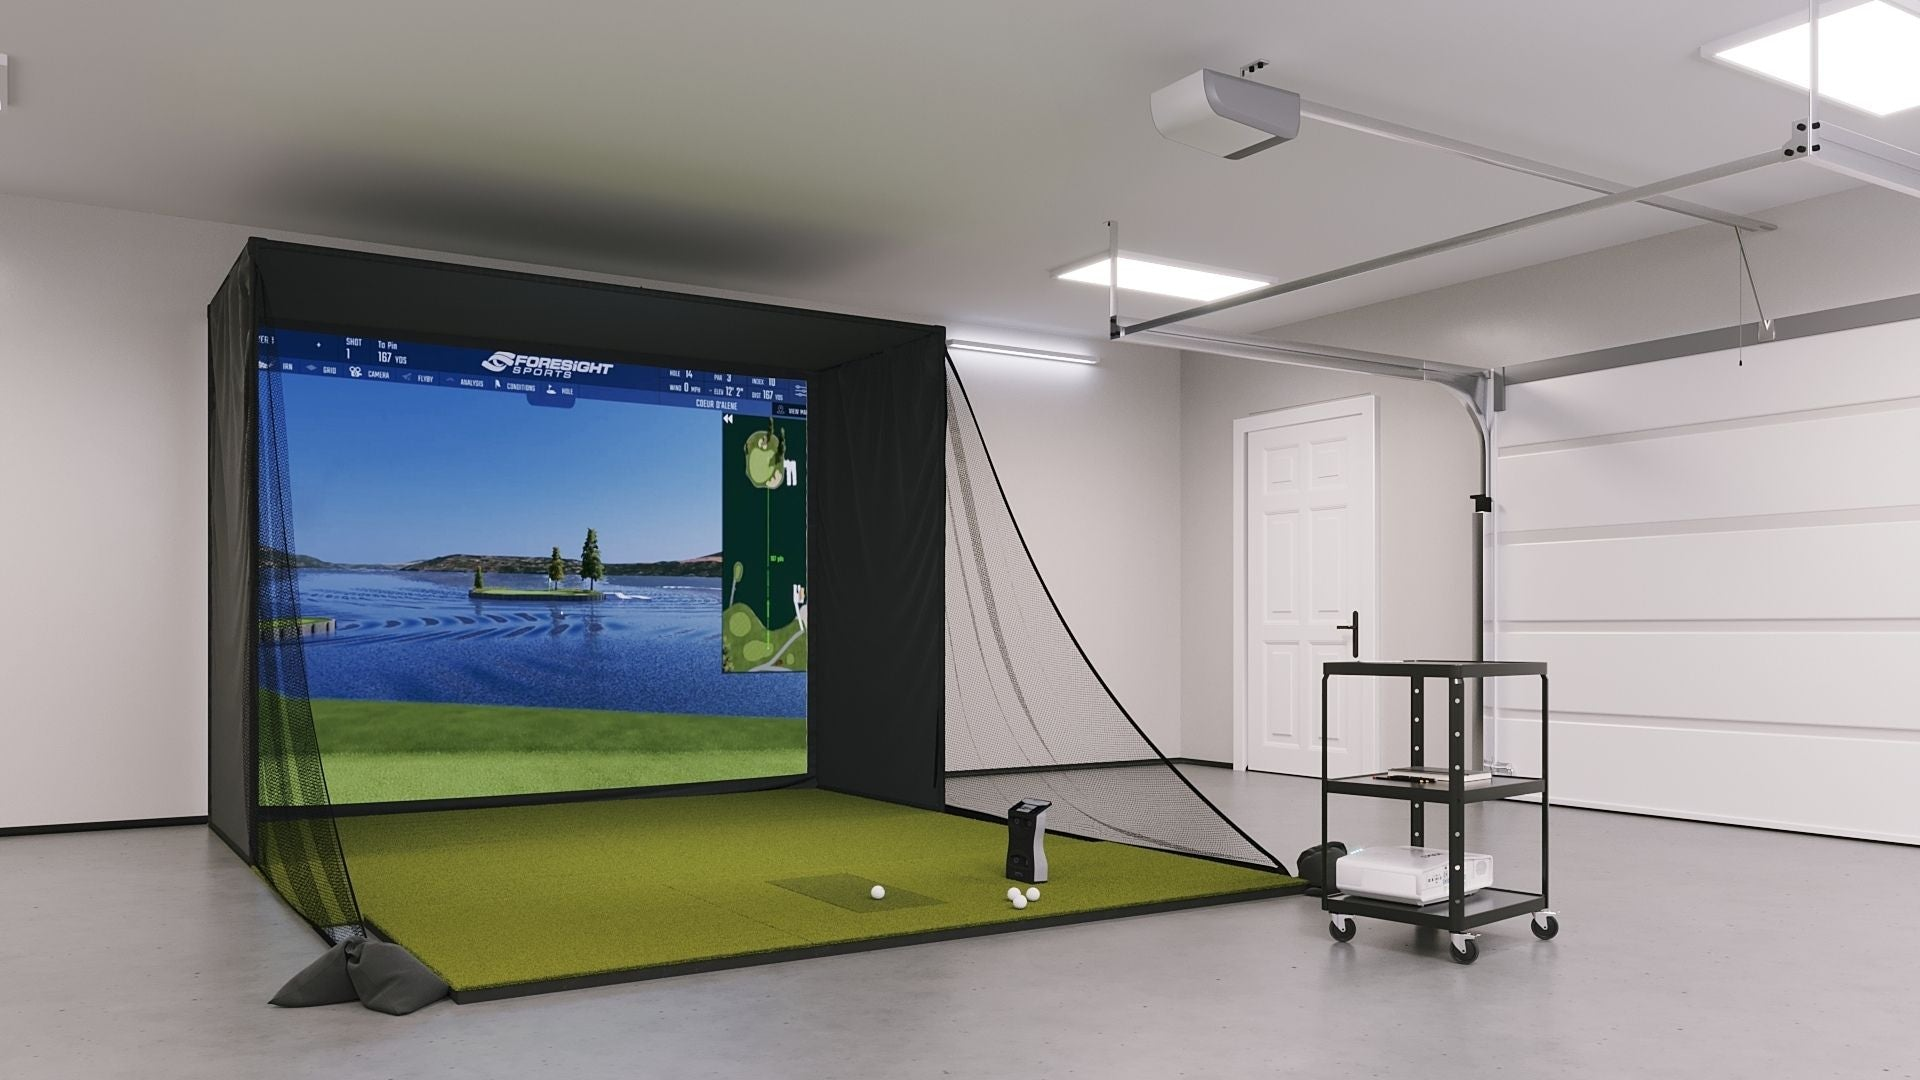 foresight-gcquad-golf-simulator-in-a-garage